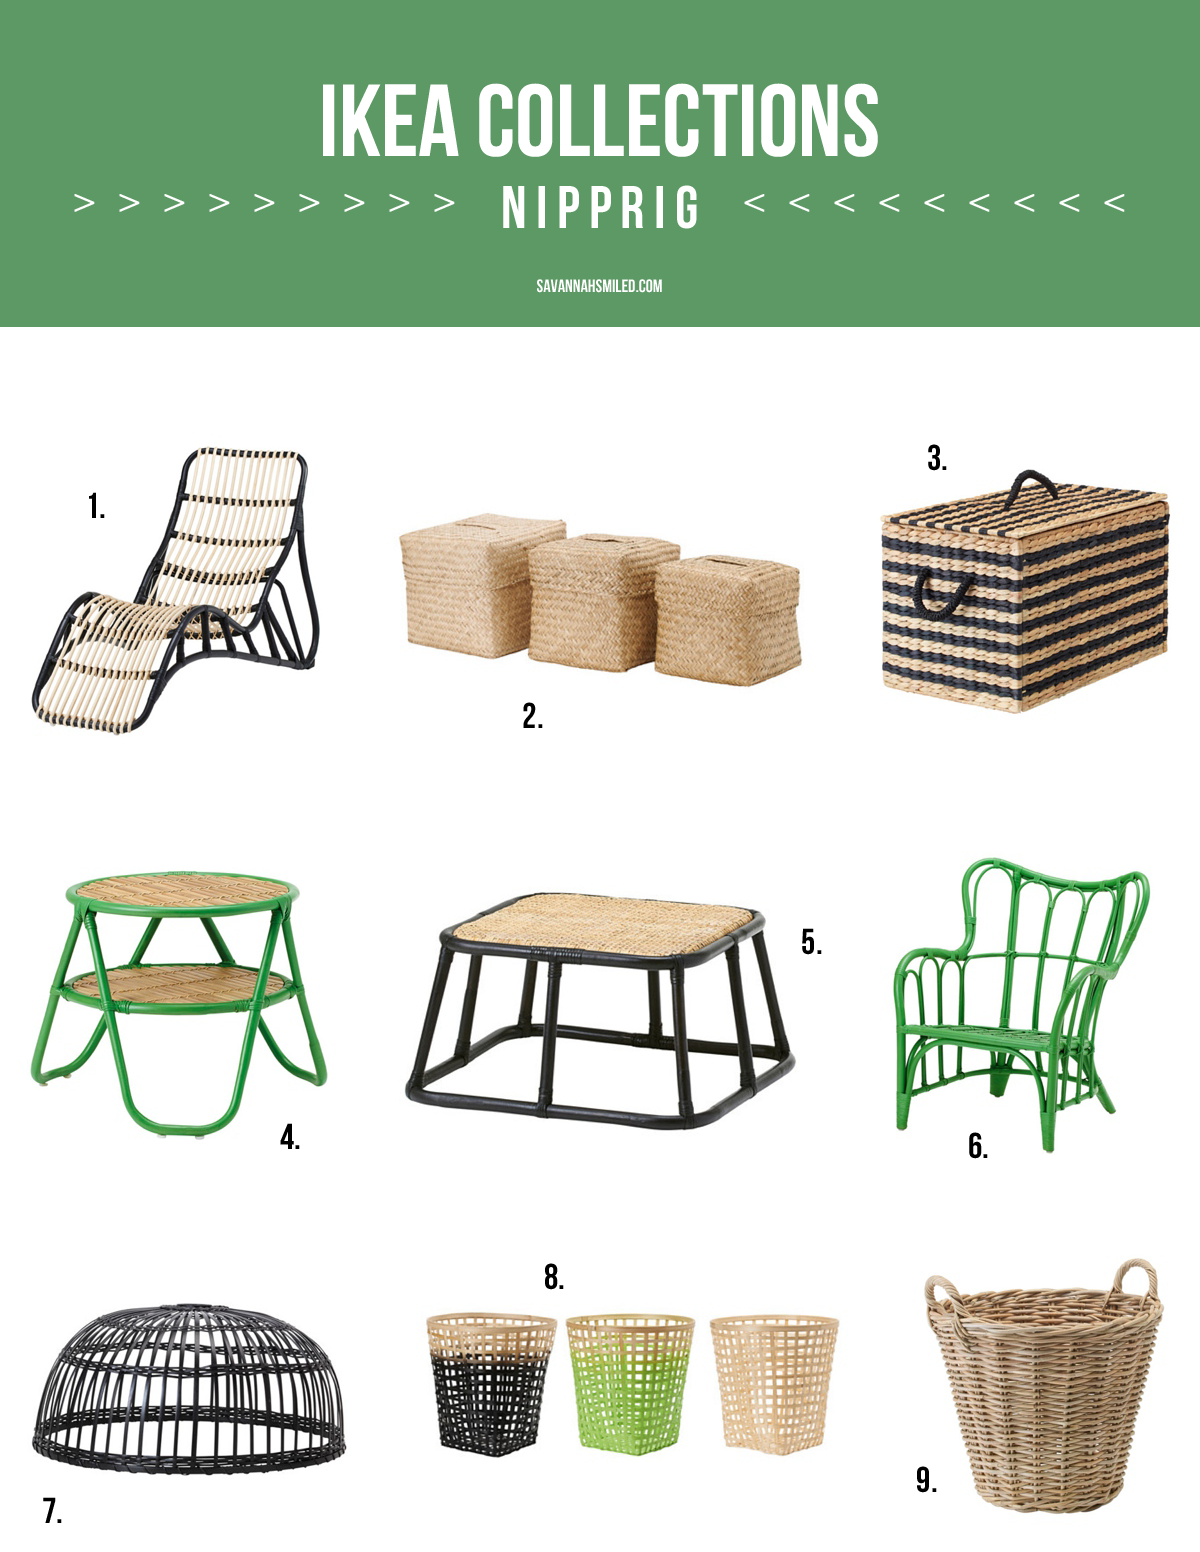 ikea-nipprig-india-handmade-collection.png